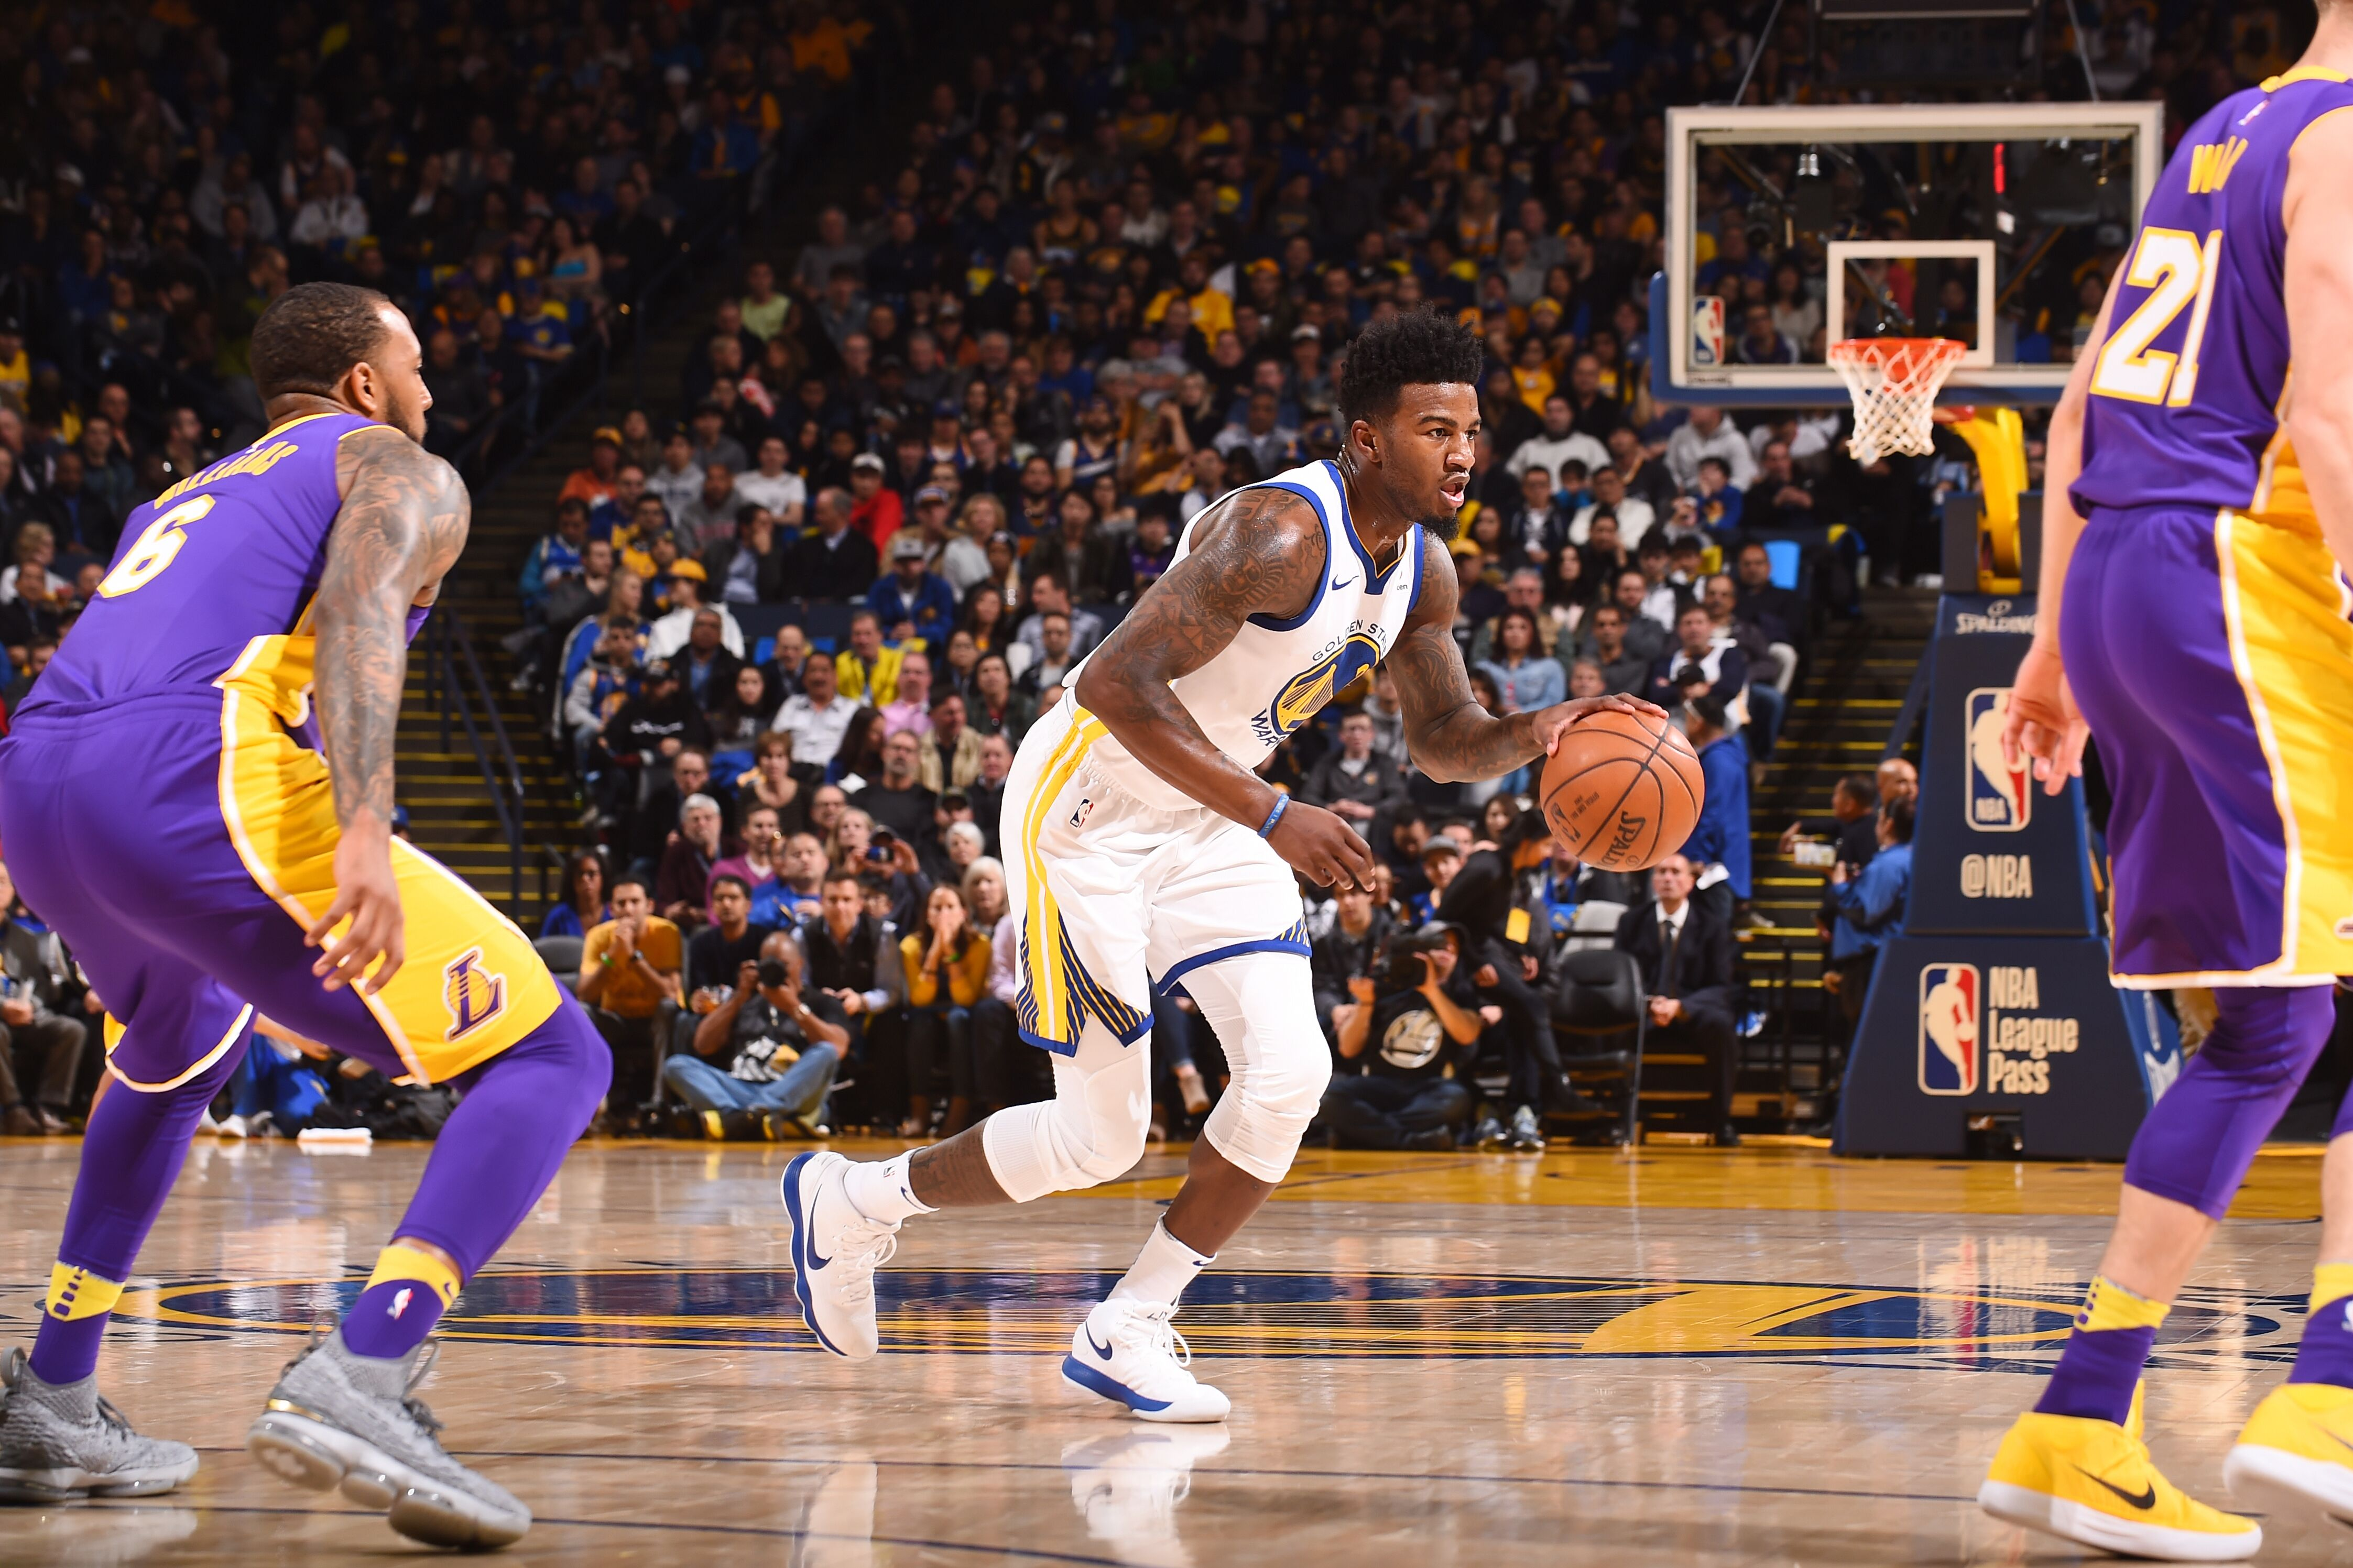 932151912-los-angeles-lakers-v-golden-state-warriors.jpg